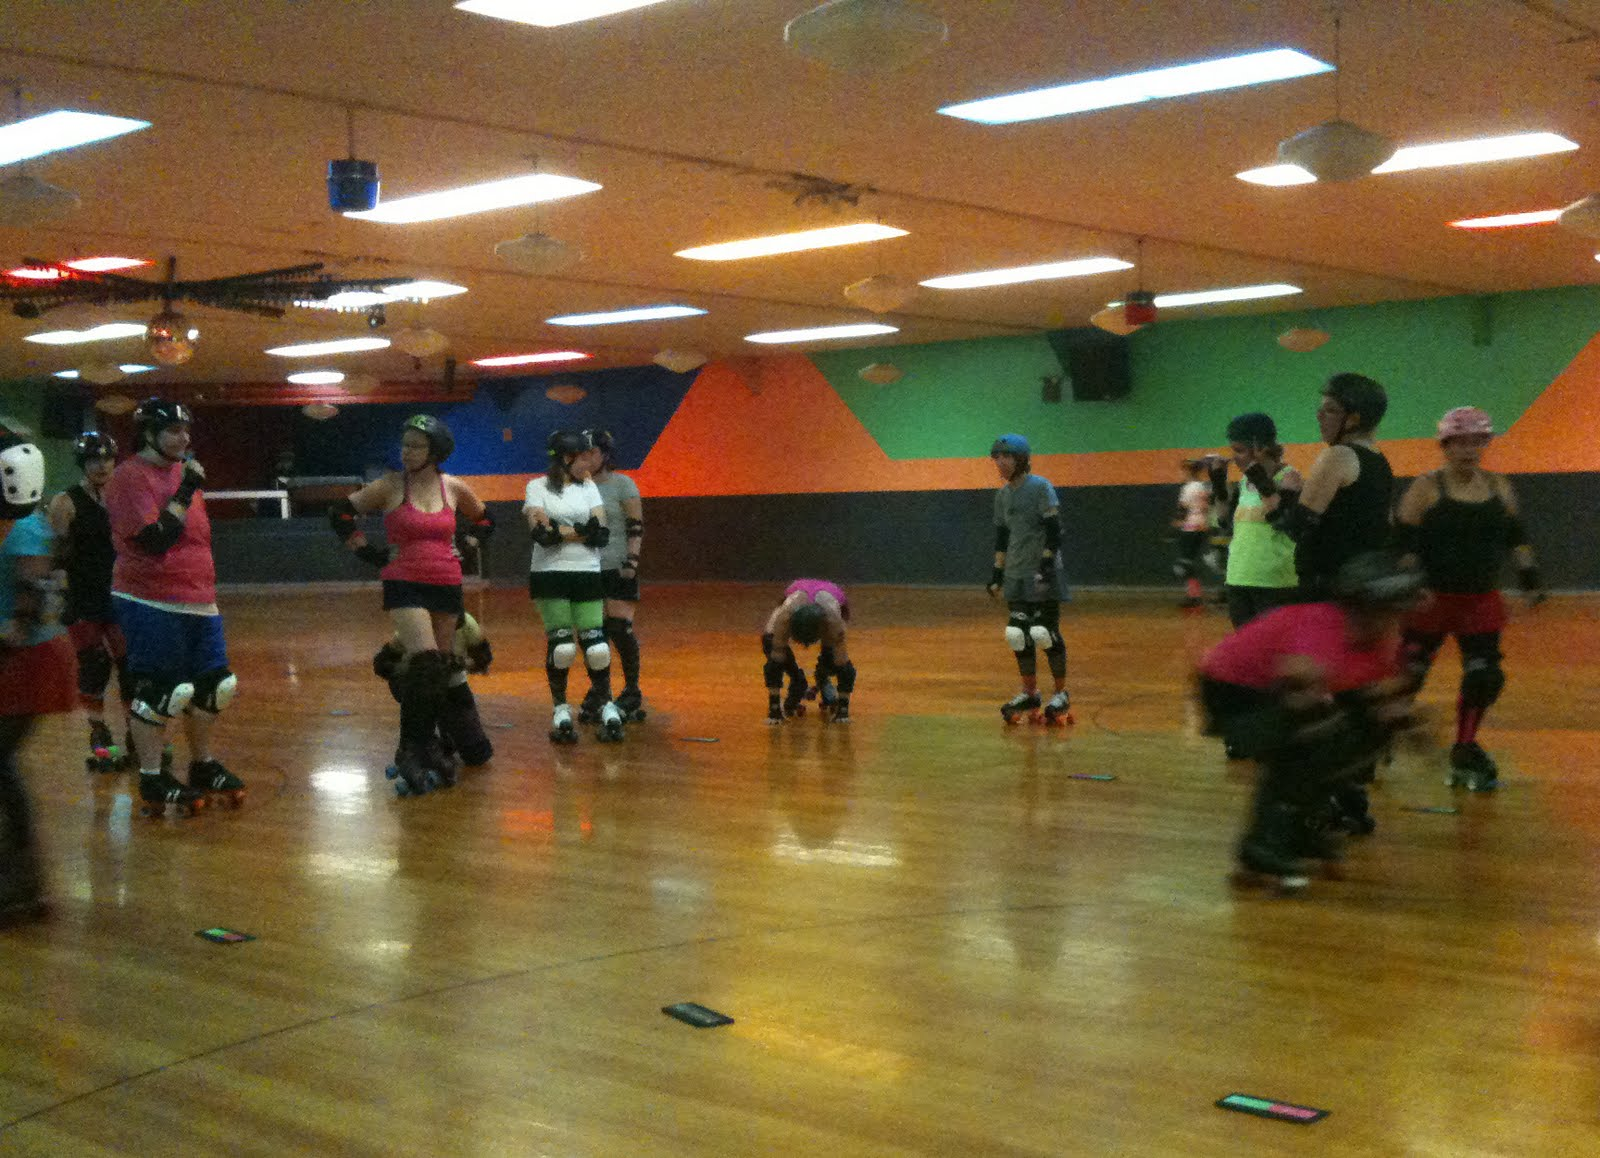 Roller skating rink westchester ny - What I Learned During Meat Week